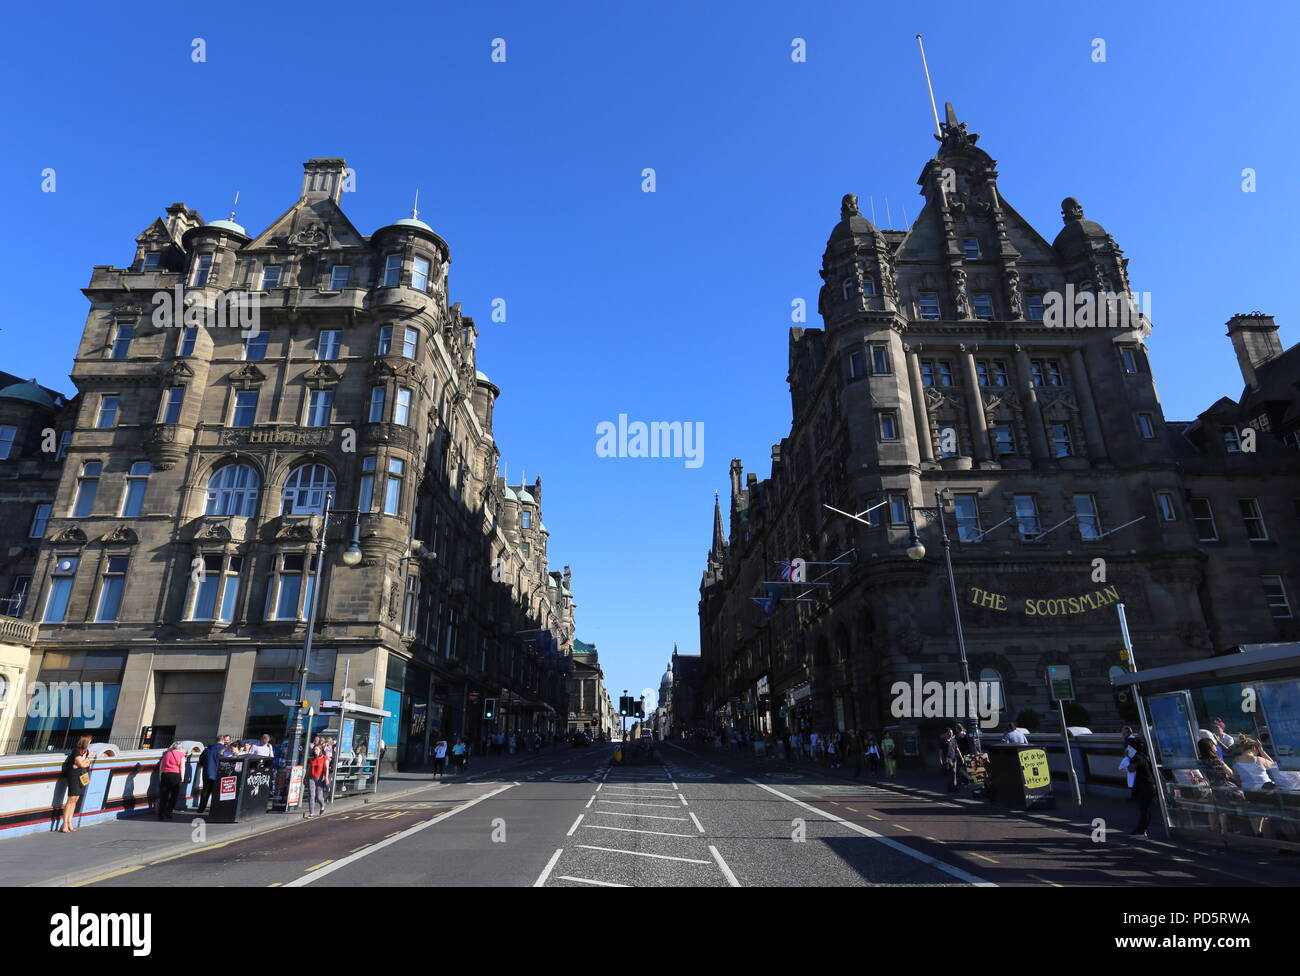 Exterior Of Hilton And Scotsman Hotels Edinburgh Scotland July 2018